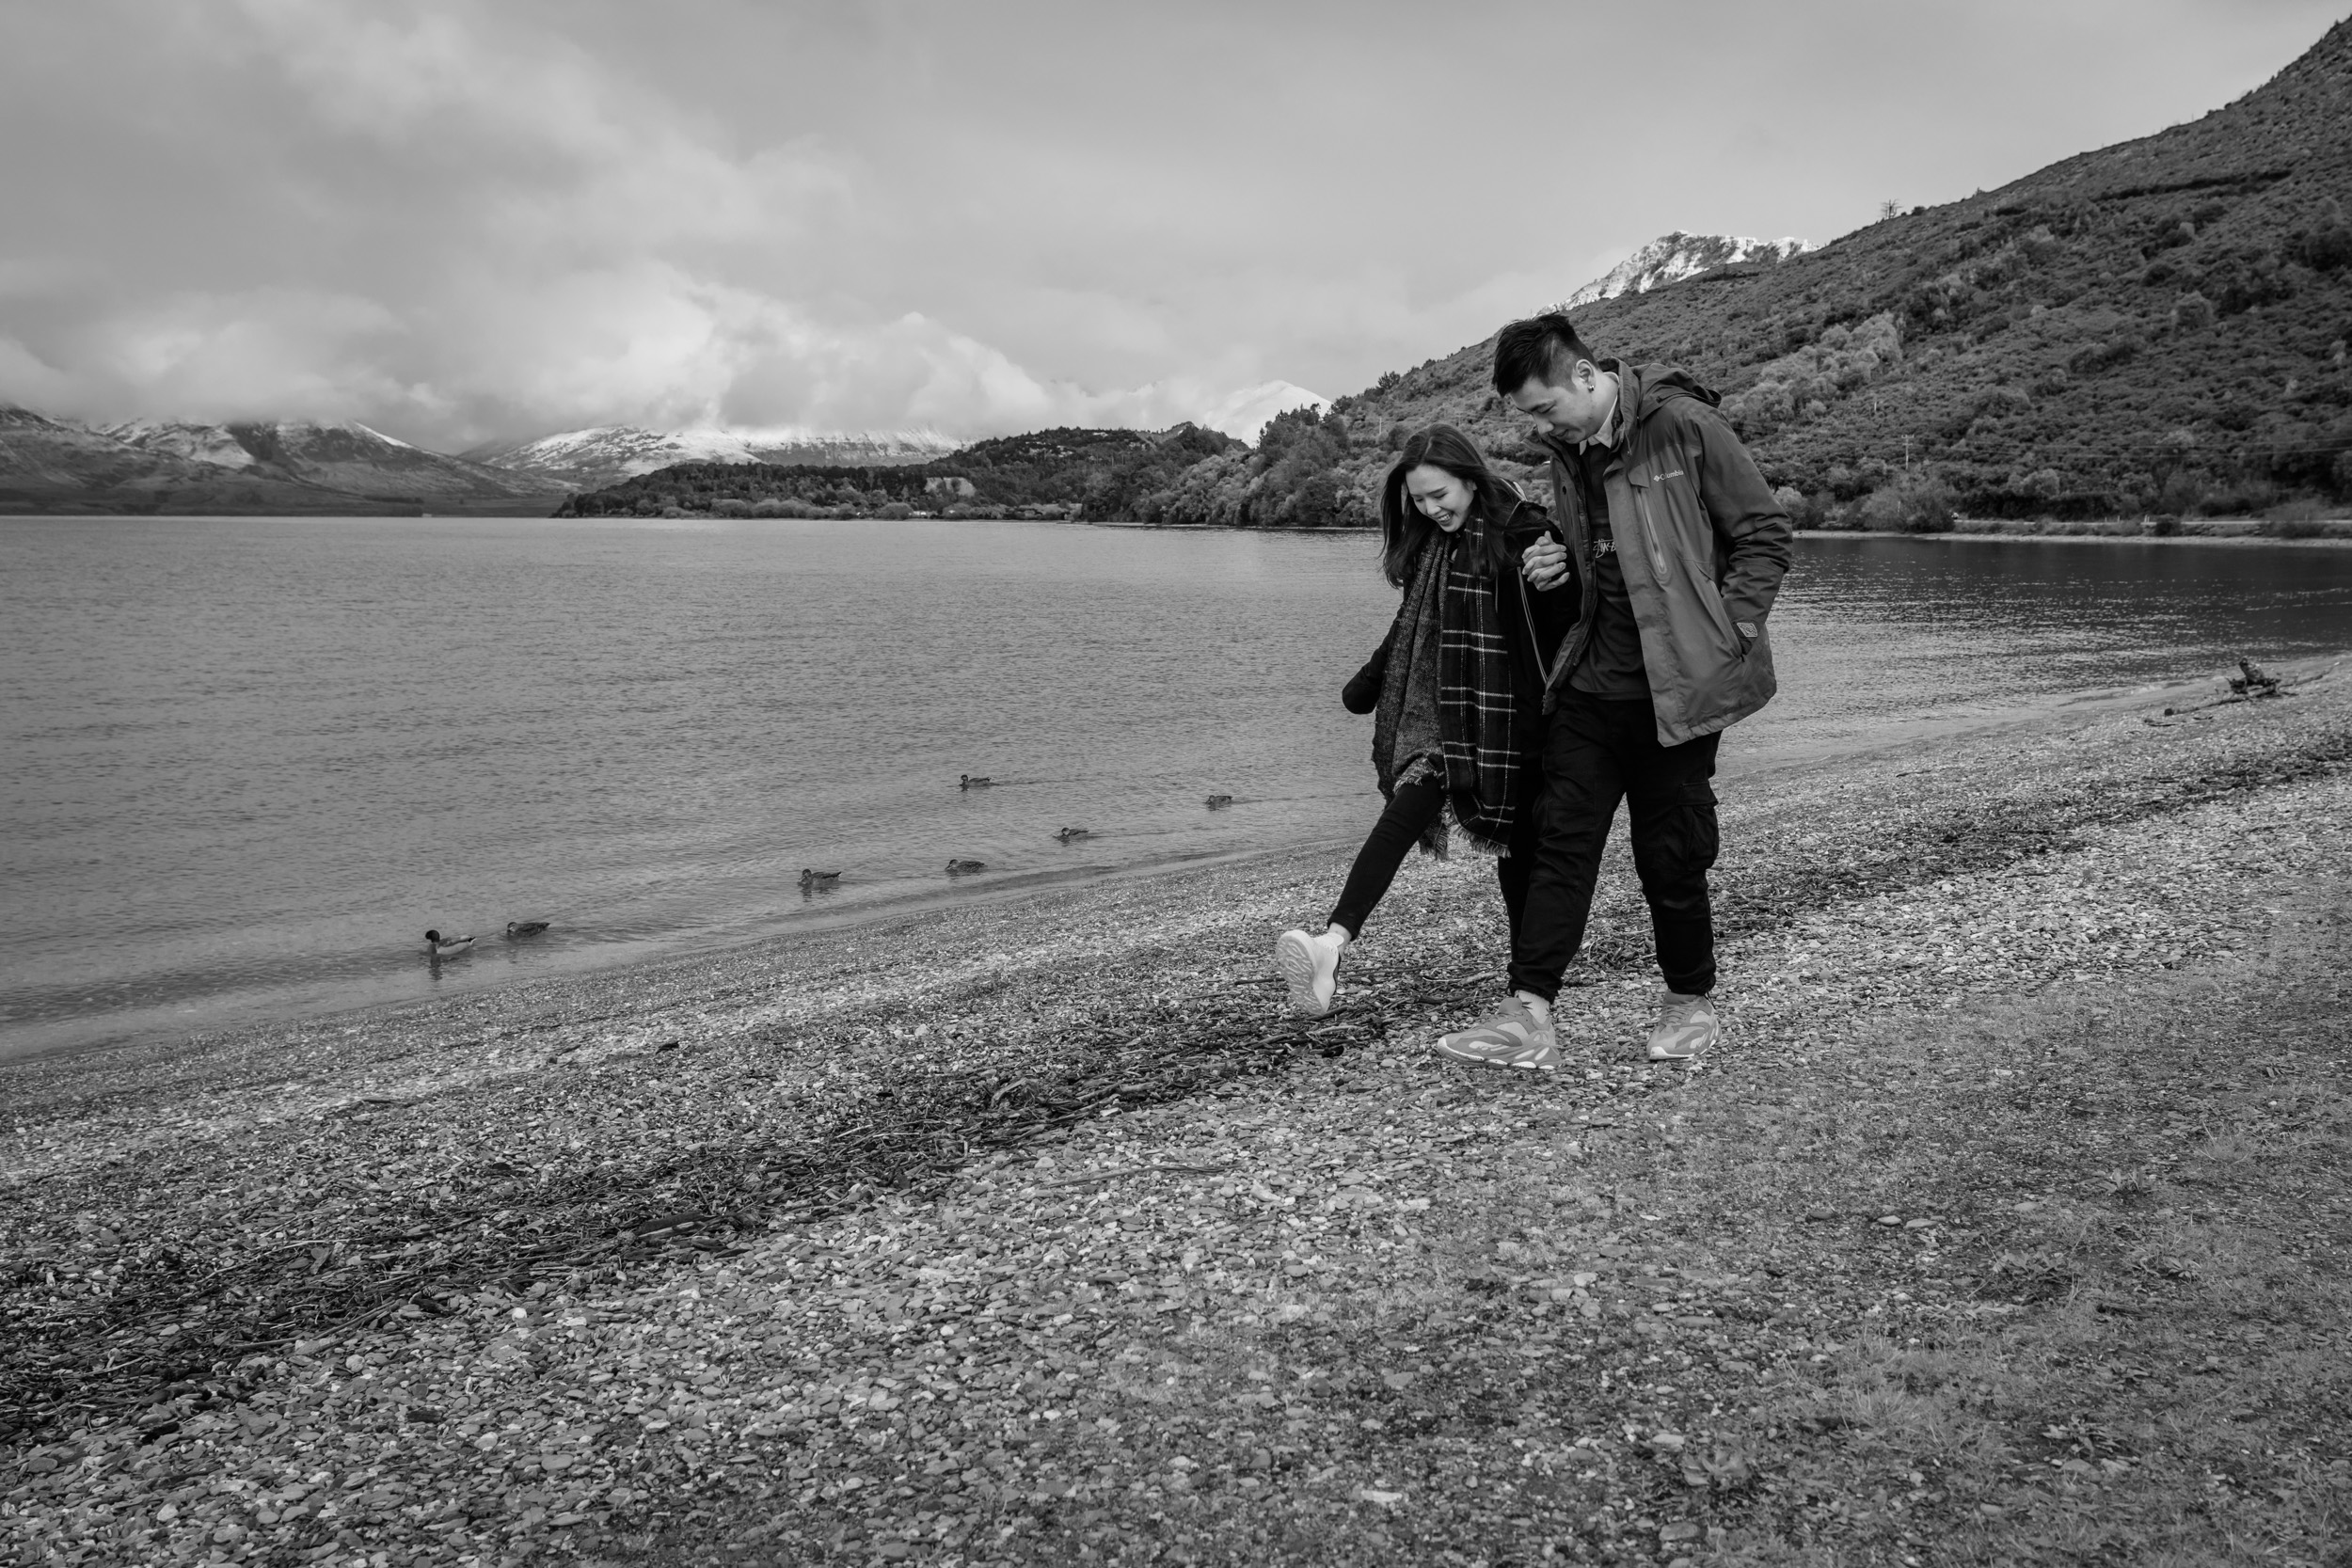 Walking along the beach - professional portrait photographs at South Island Points of Interest